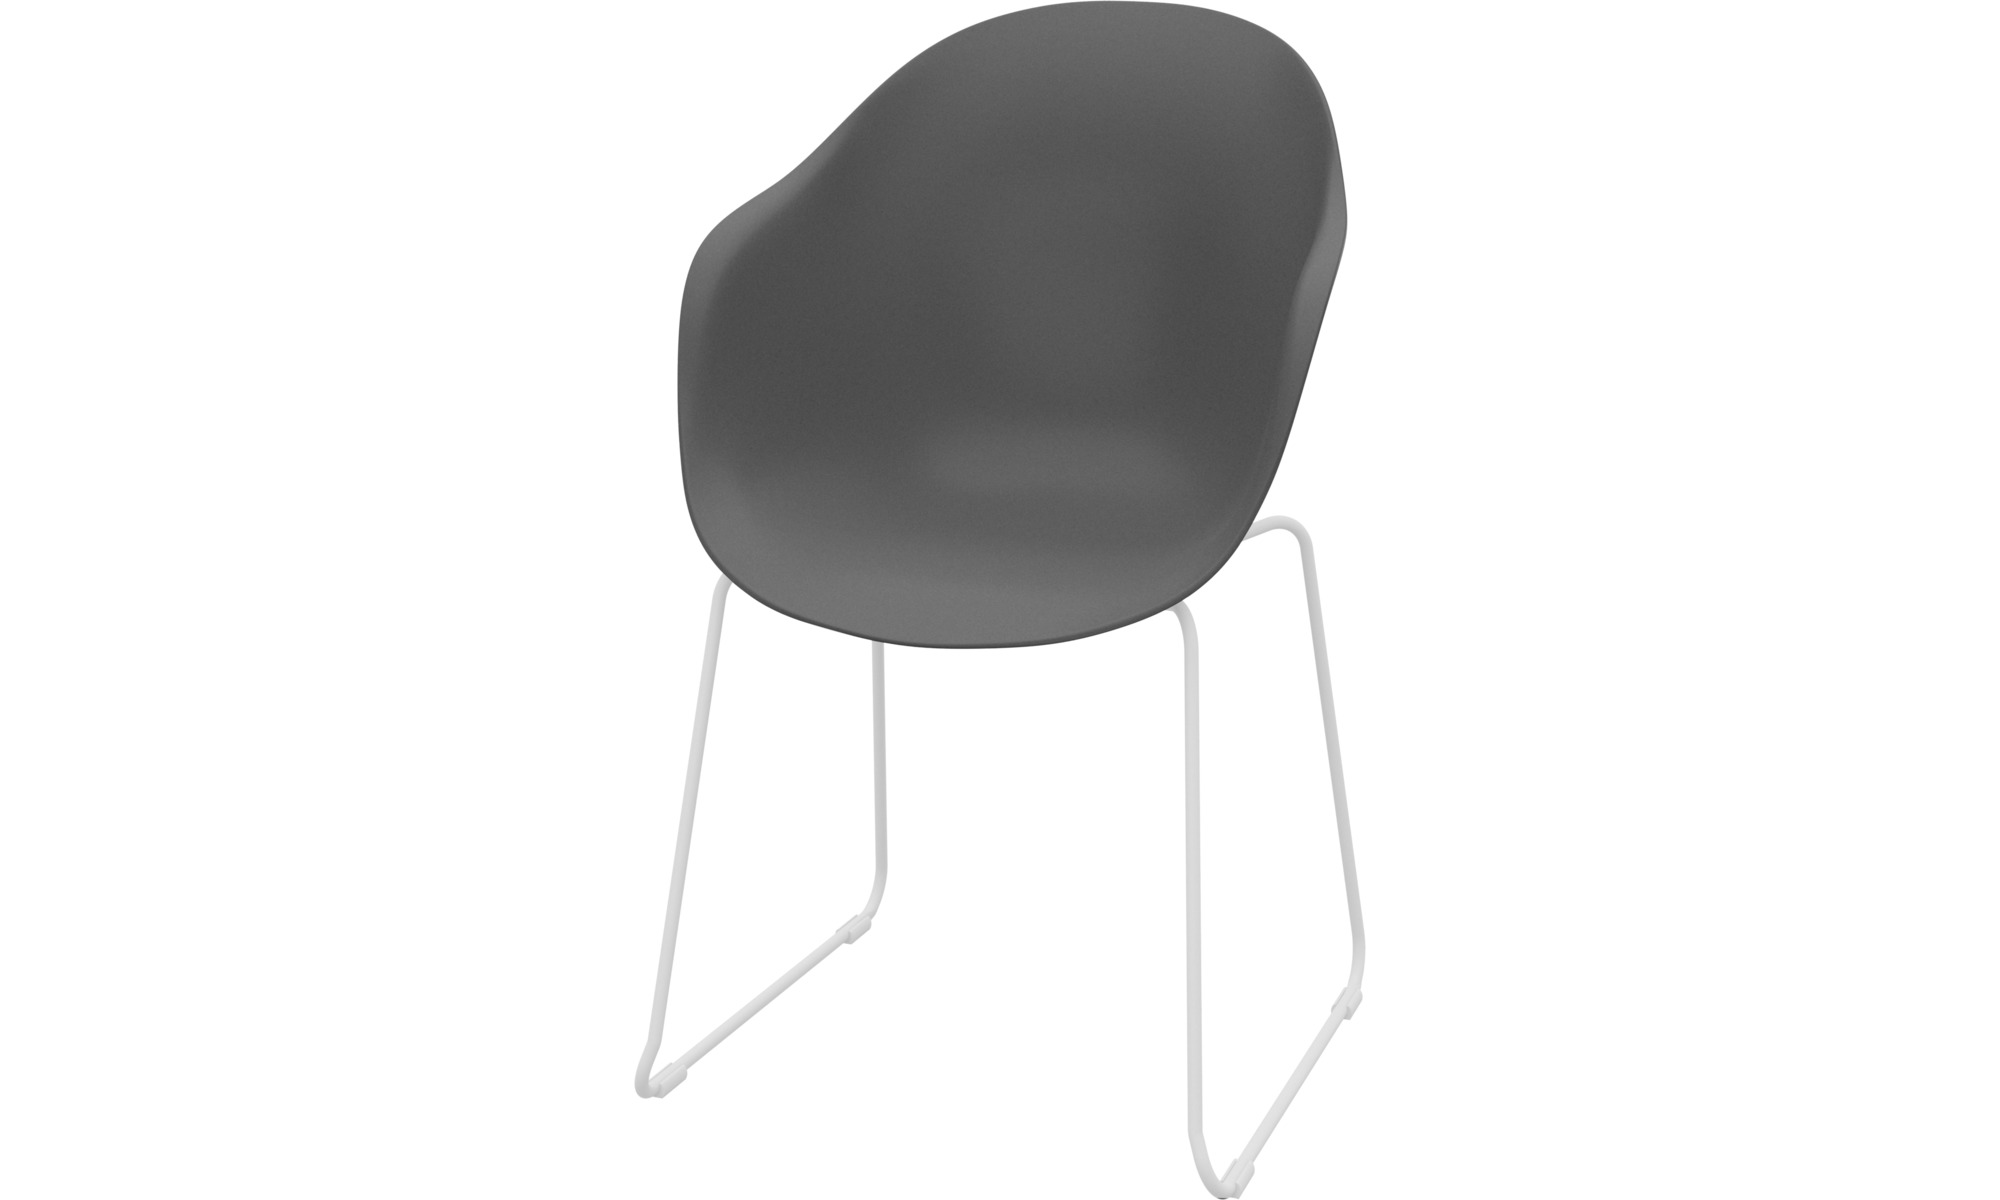 Dining chairs - Adelaide chair (for in- and outdoor use) - Grey - Plastic